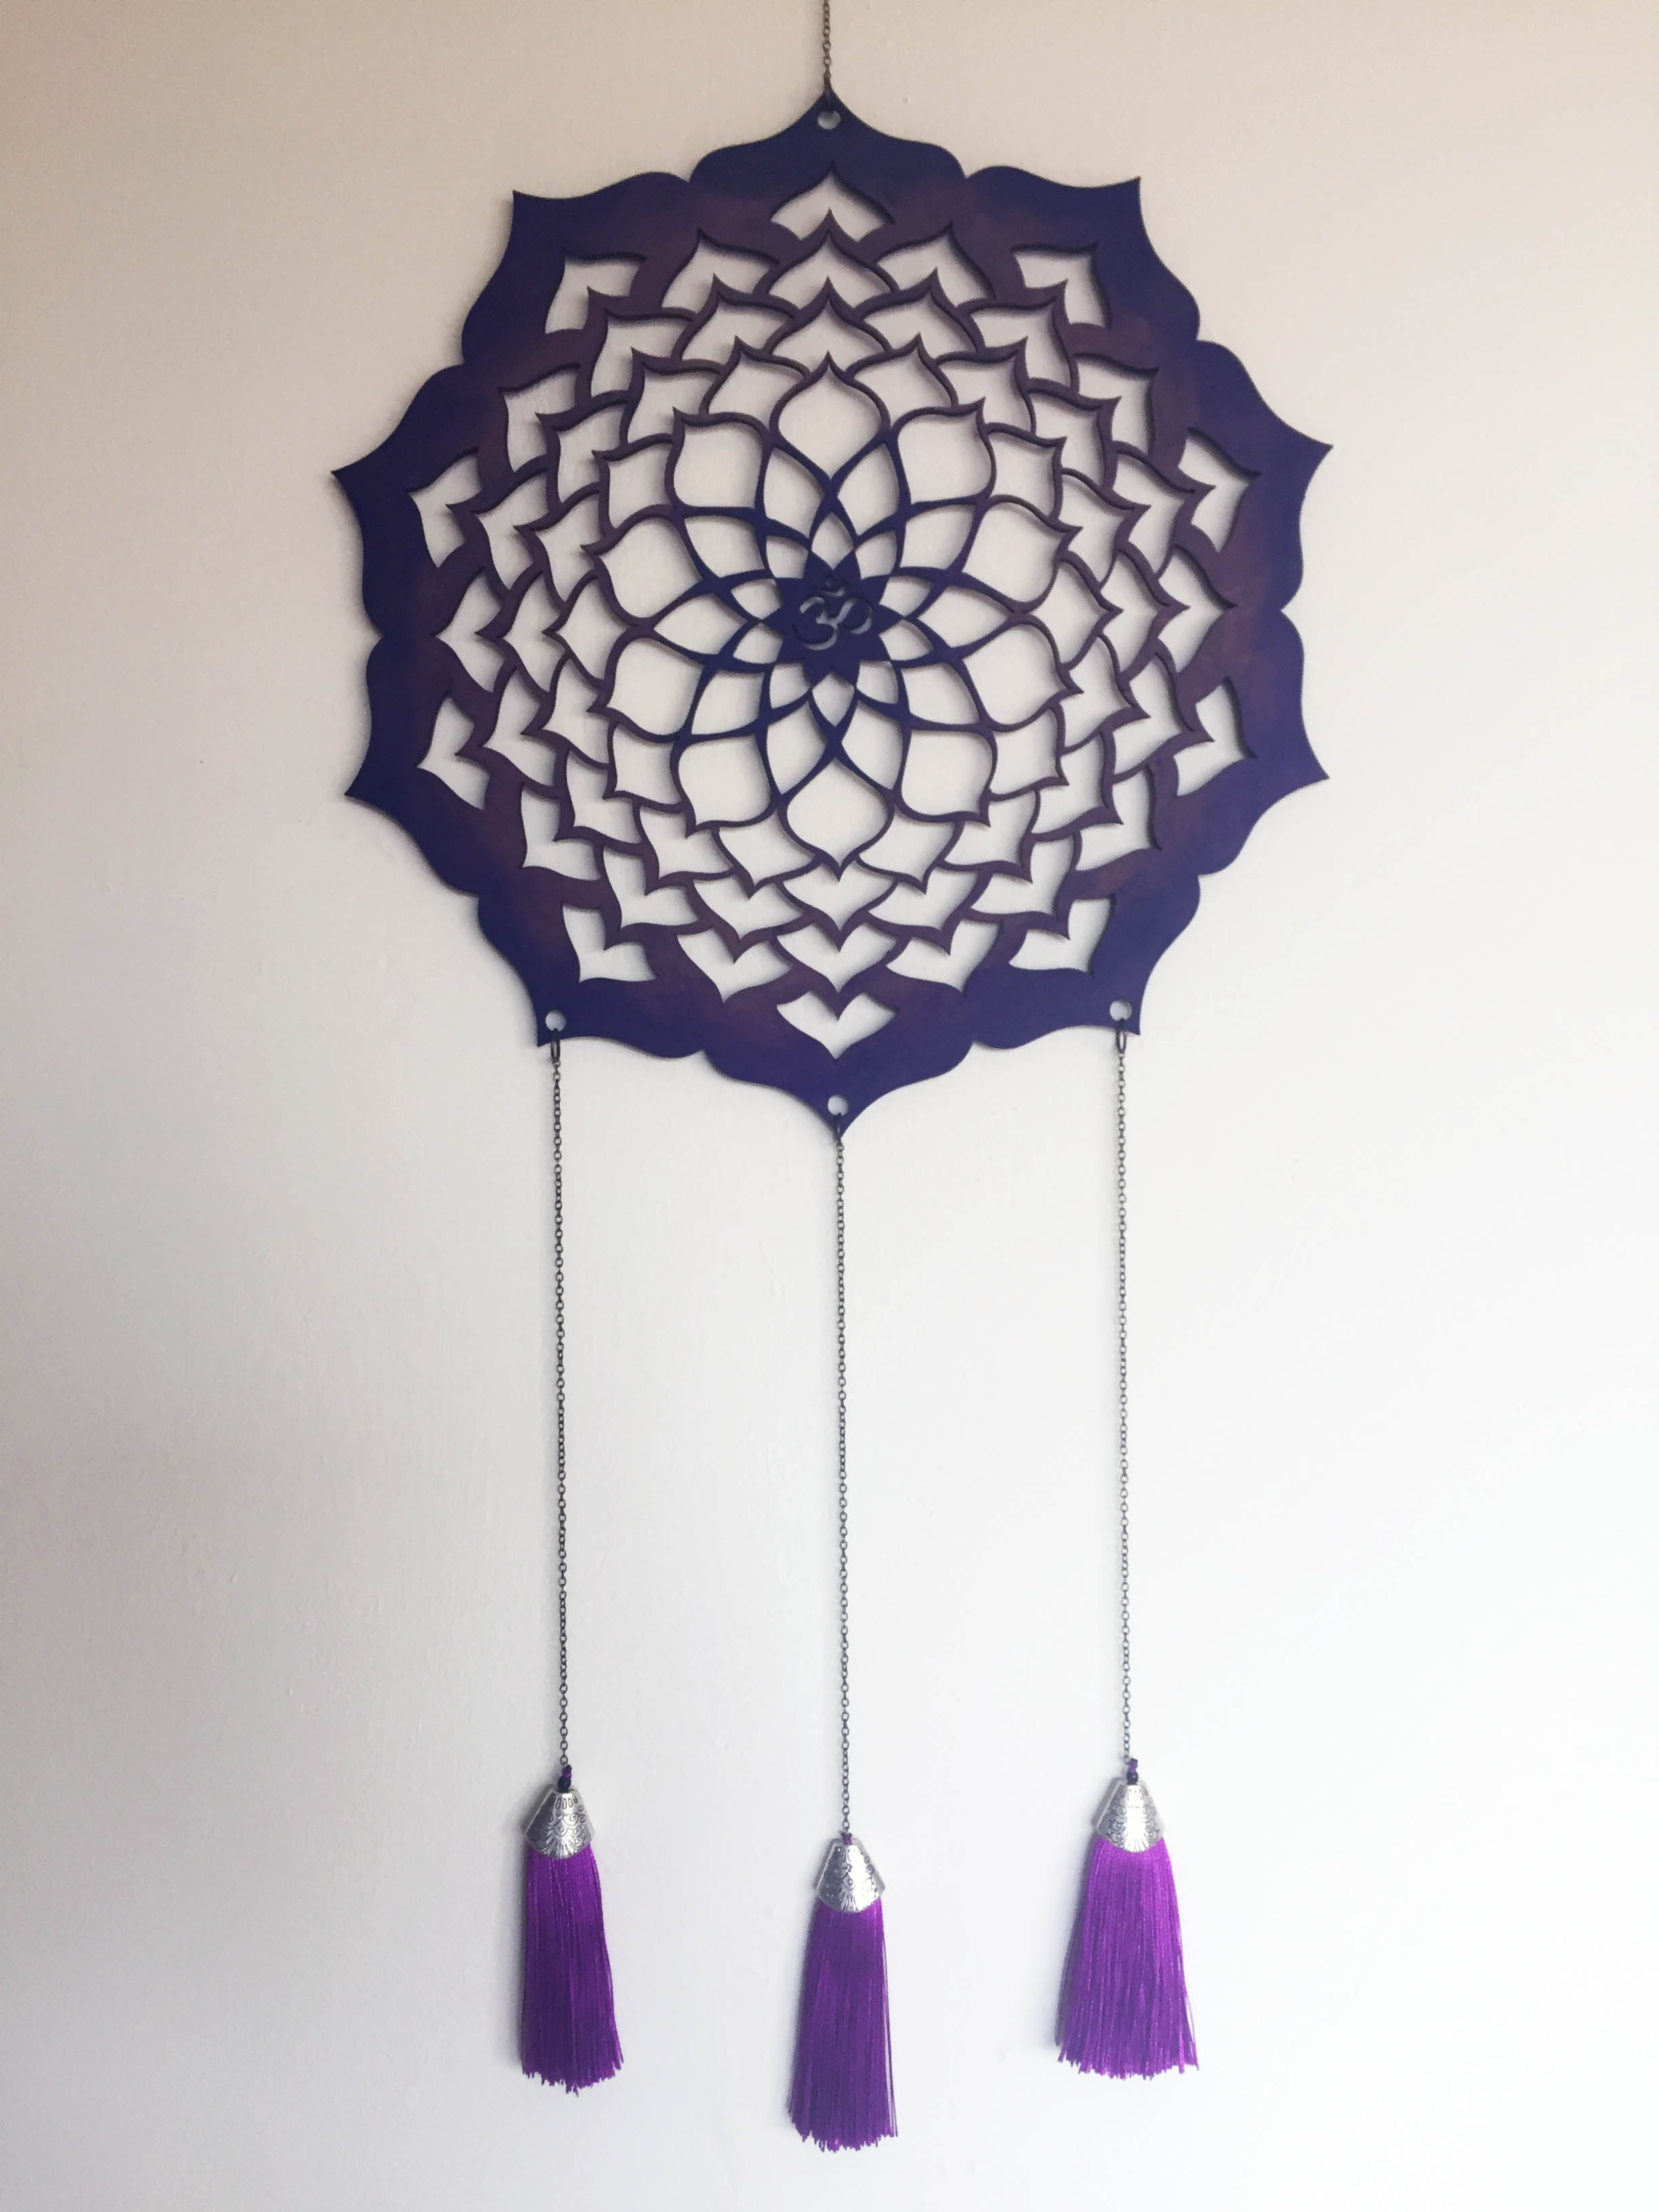 SAHASRARA MOVIL/HANGING